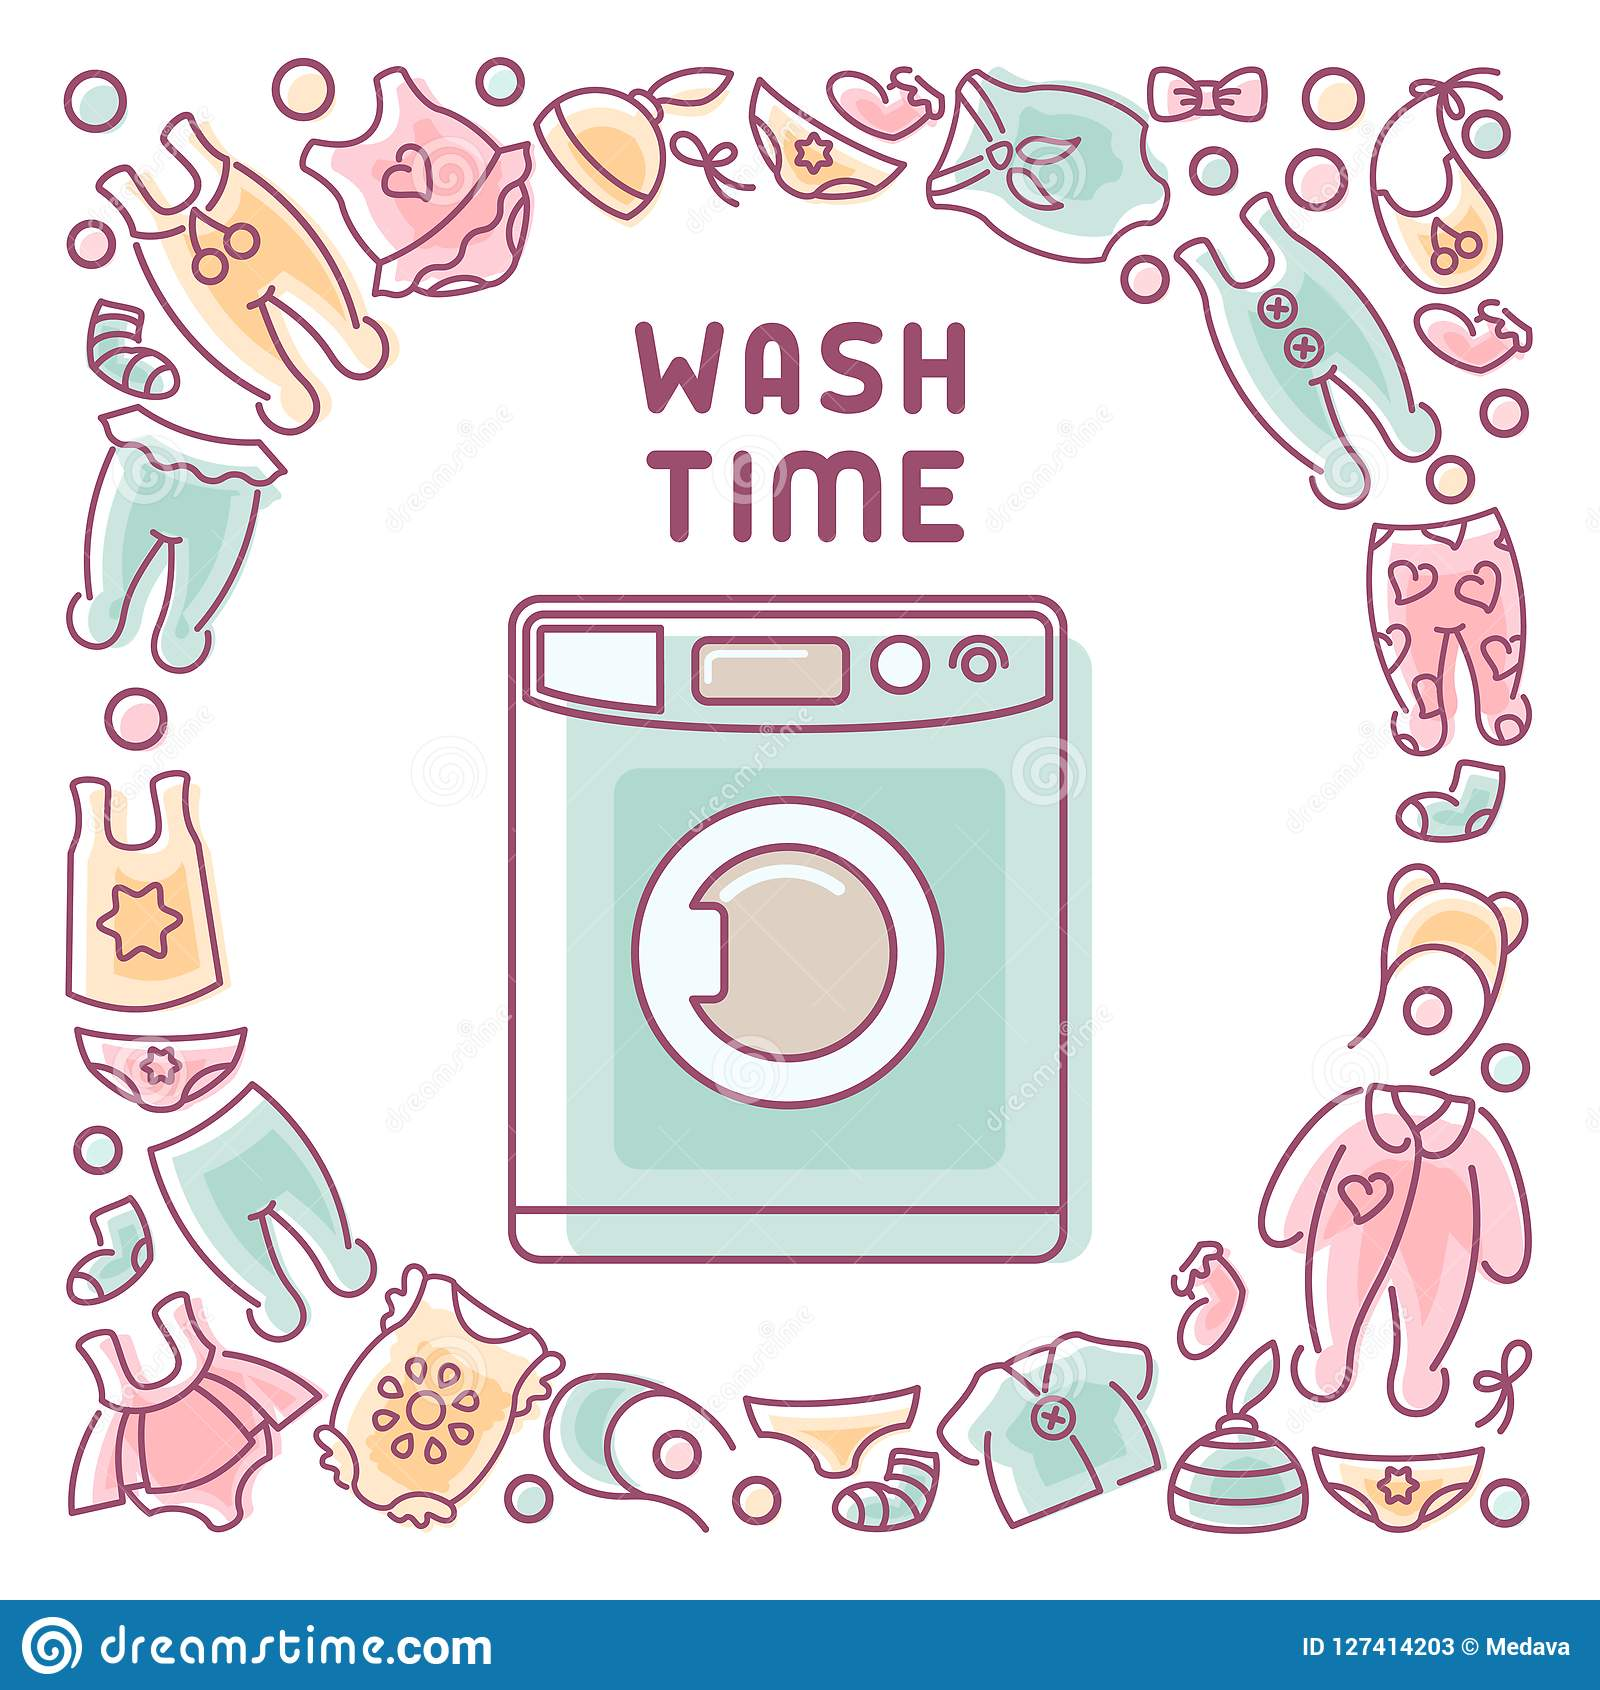 Wash Time Card With Washing Machine And Clothes Stock Vector